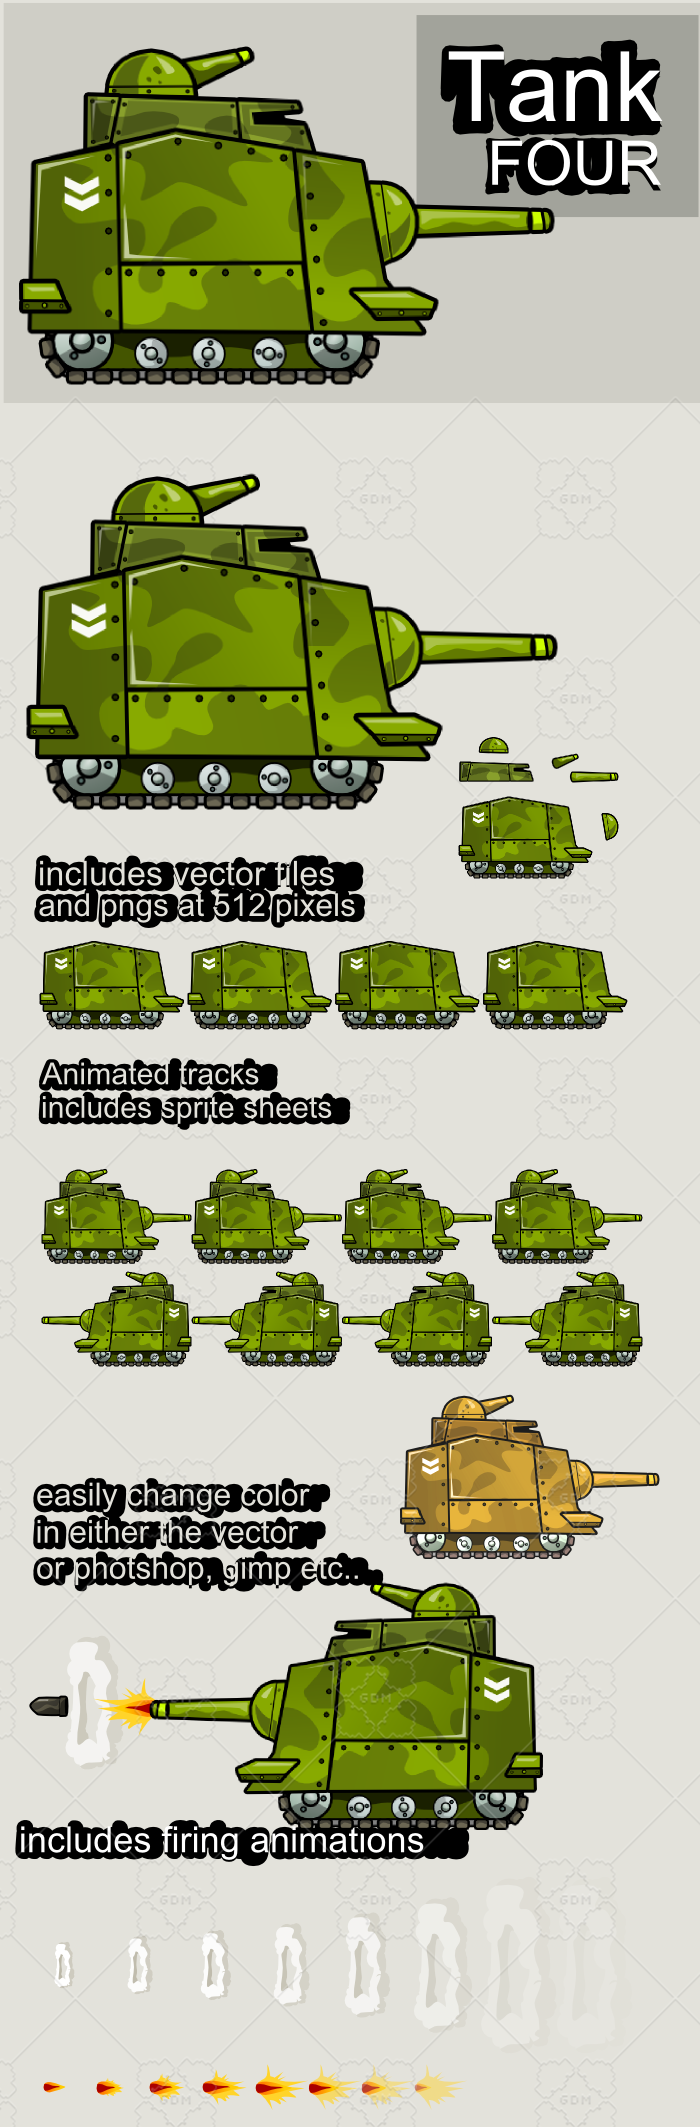 Animated tank 4